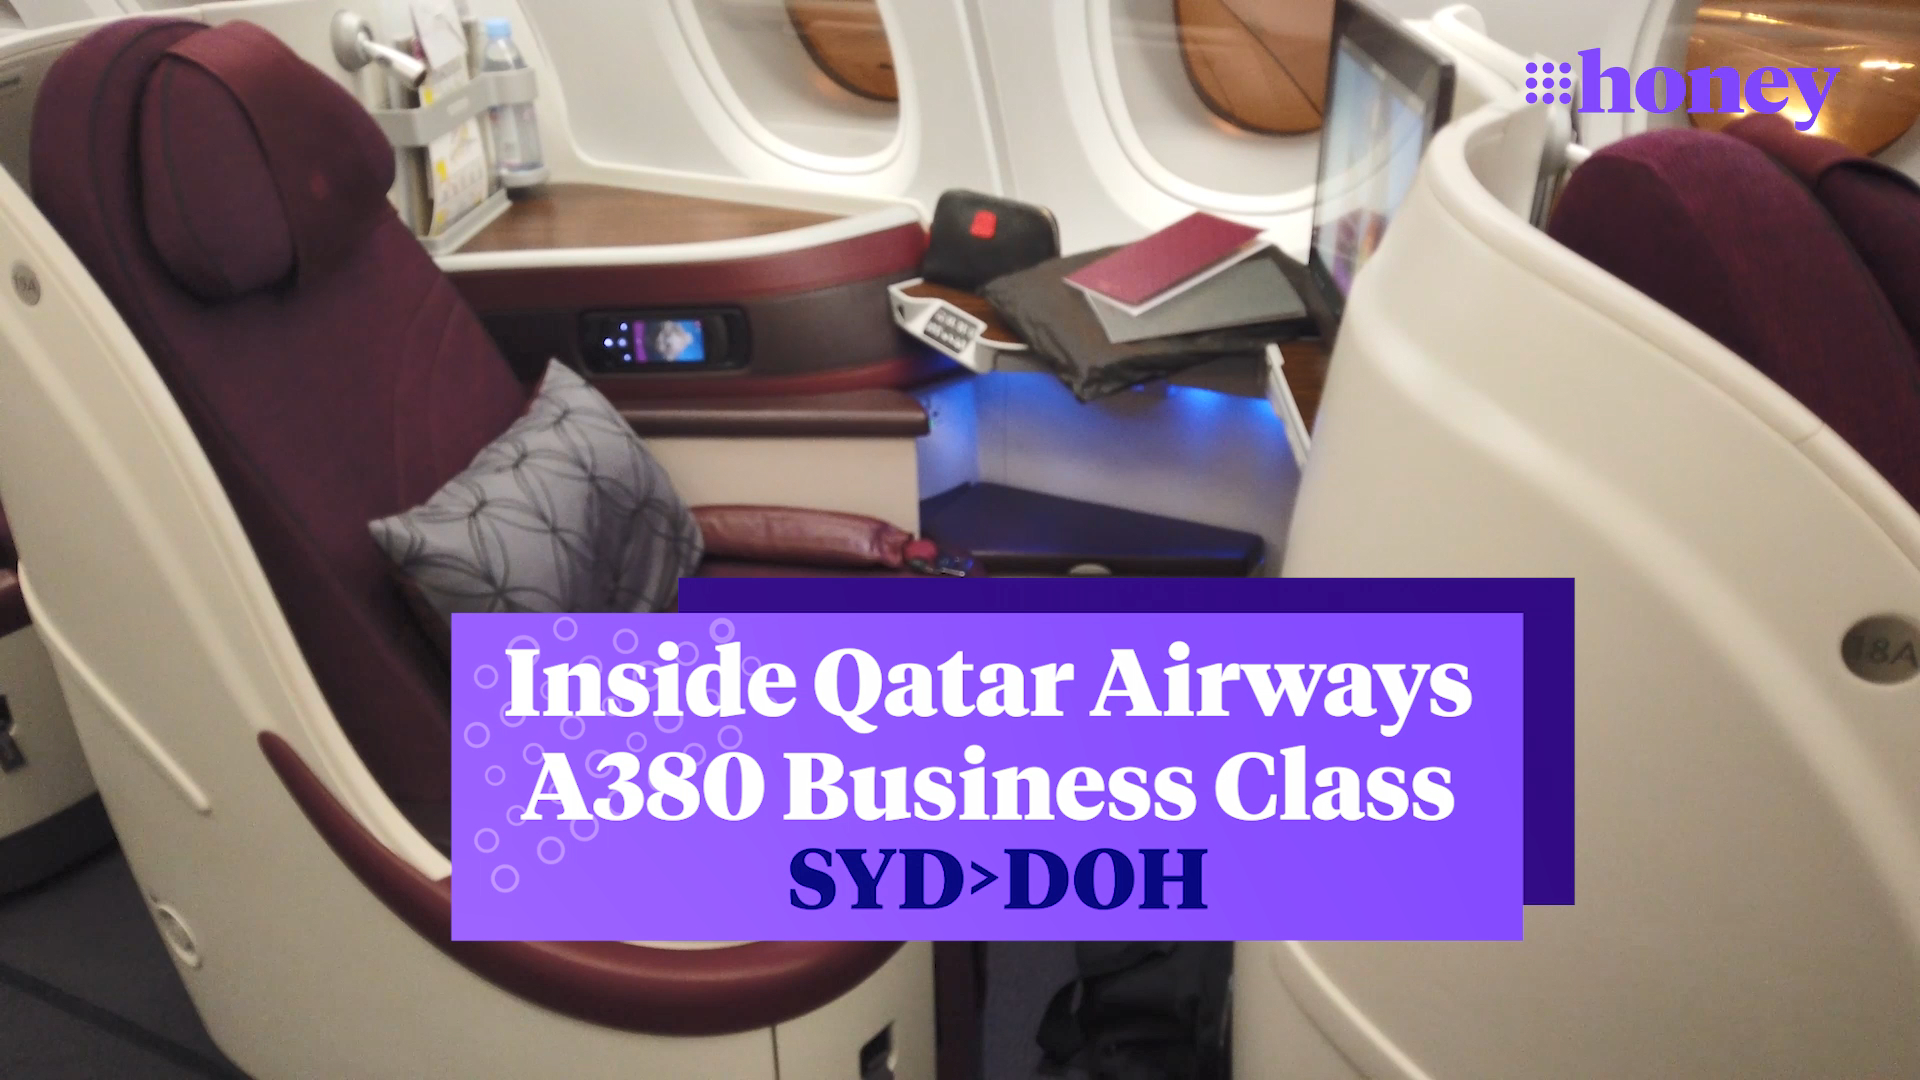 Inside Qatar Airways Business Class